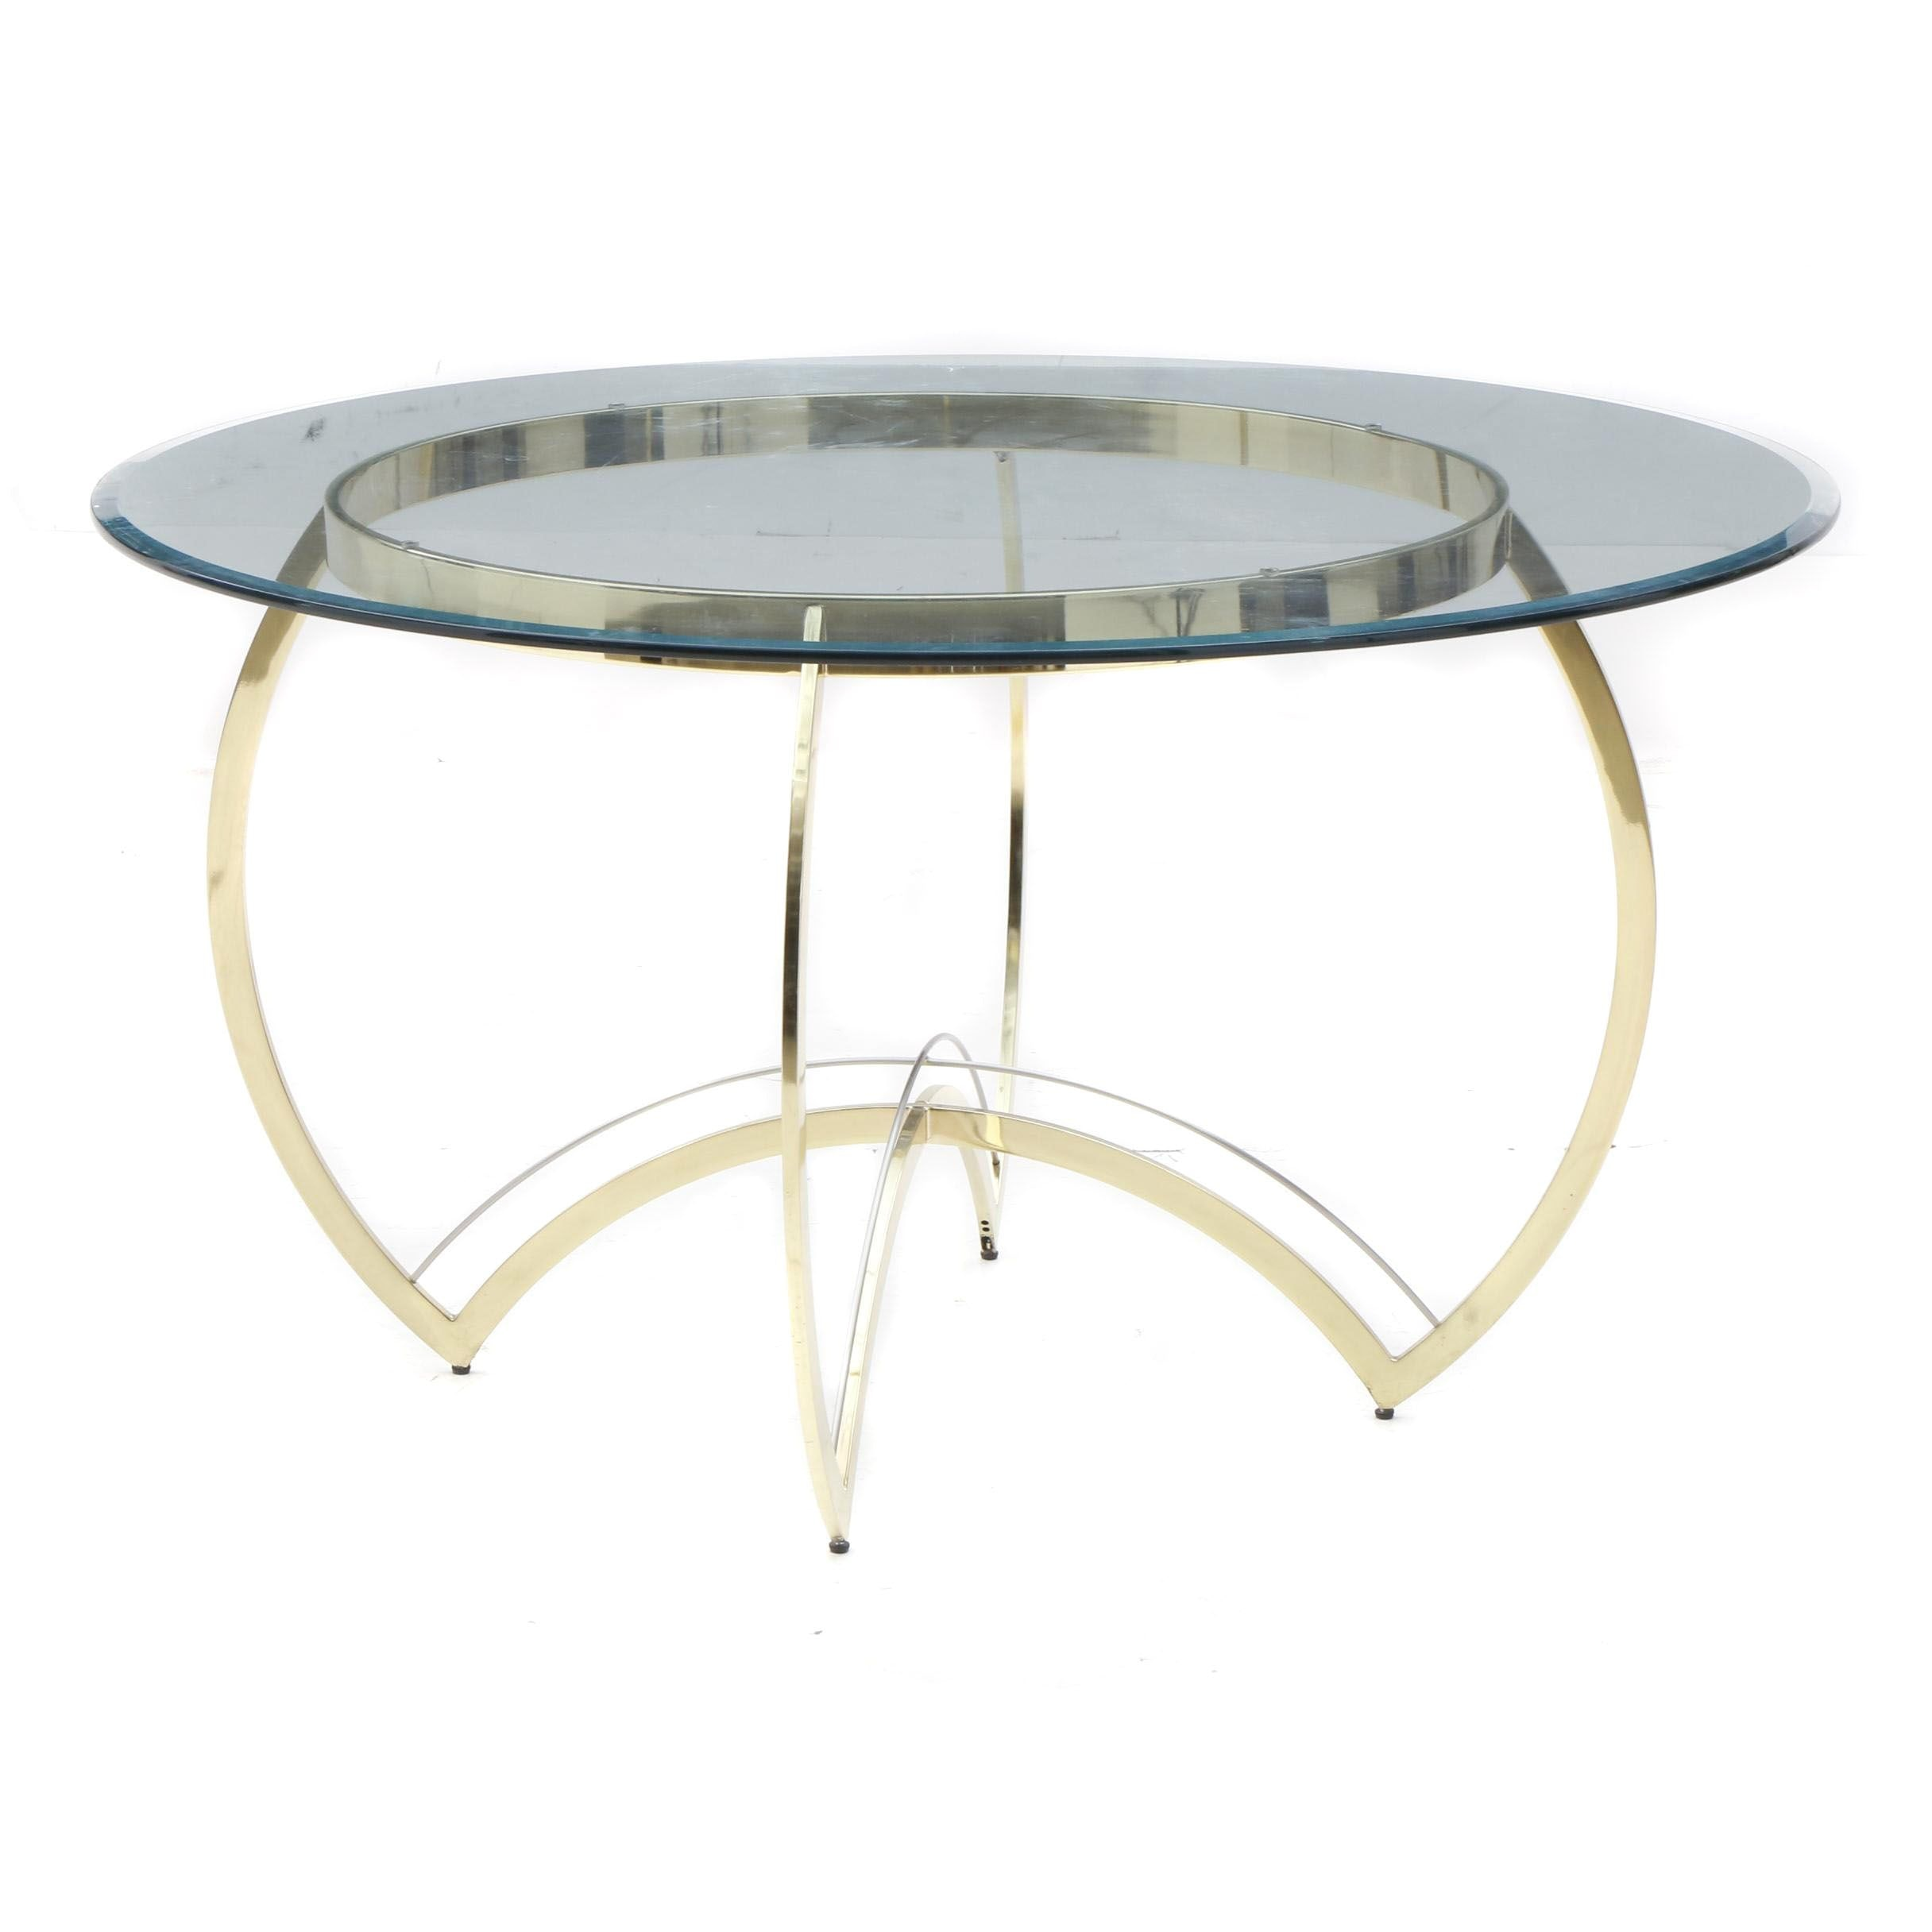 Contemporary Glass Top with Brass Base Round Dining Table